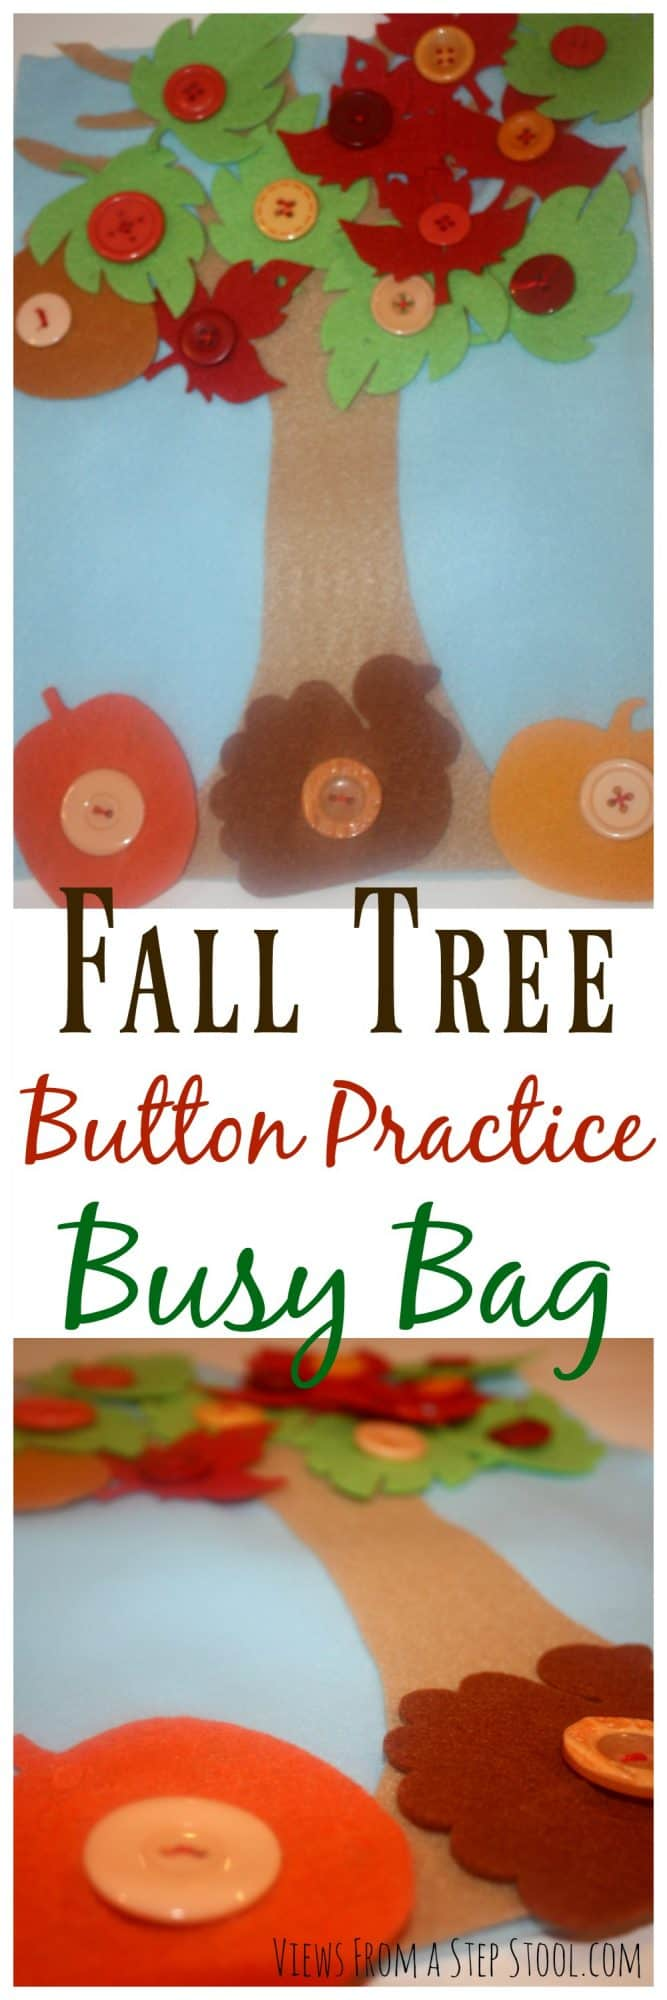 Fall Tree Button Practice Busy Bag